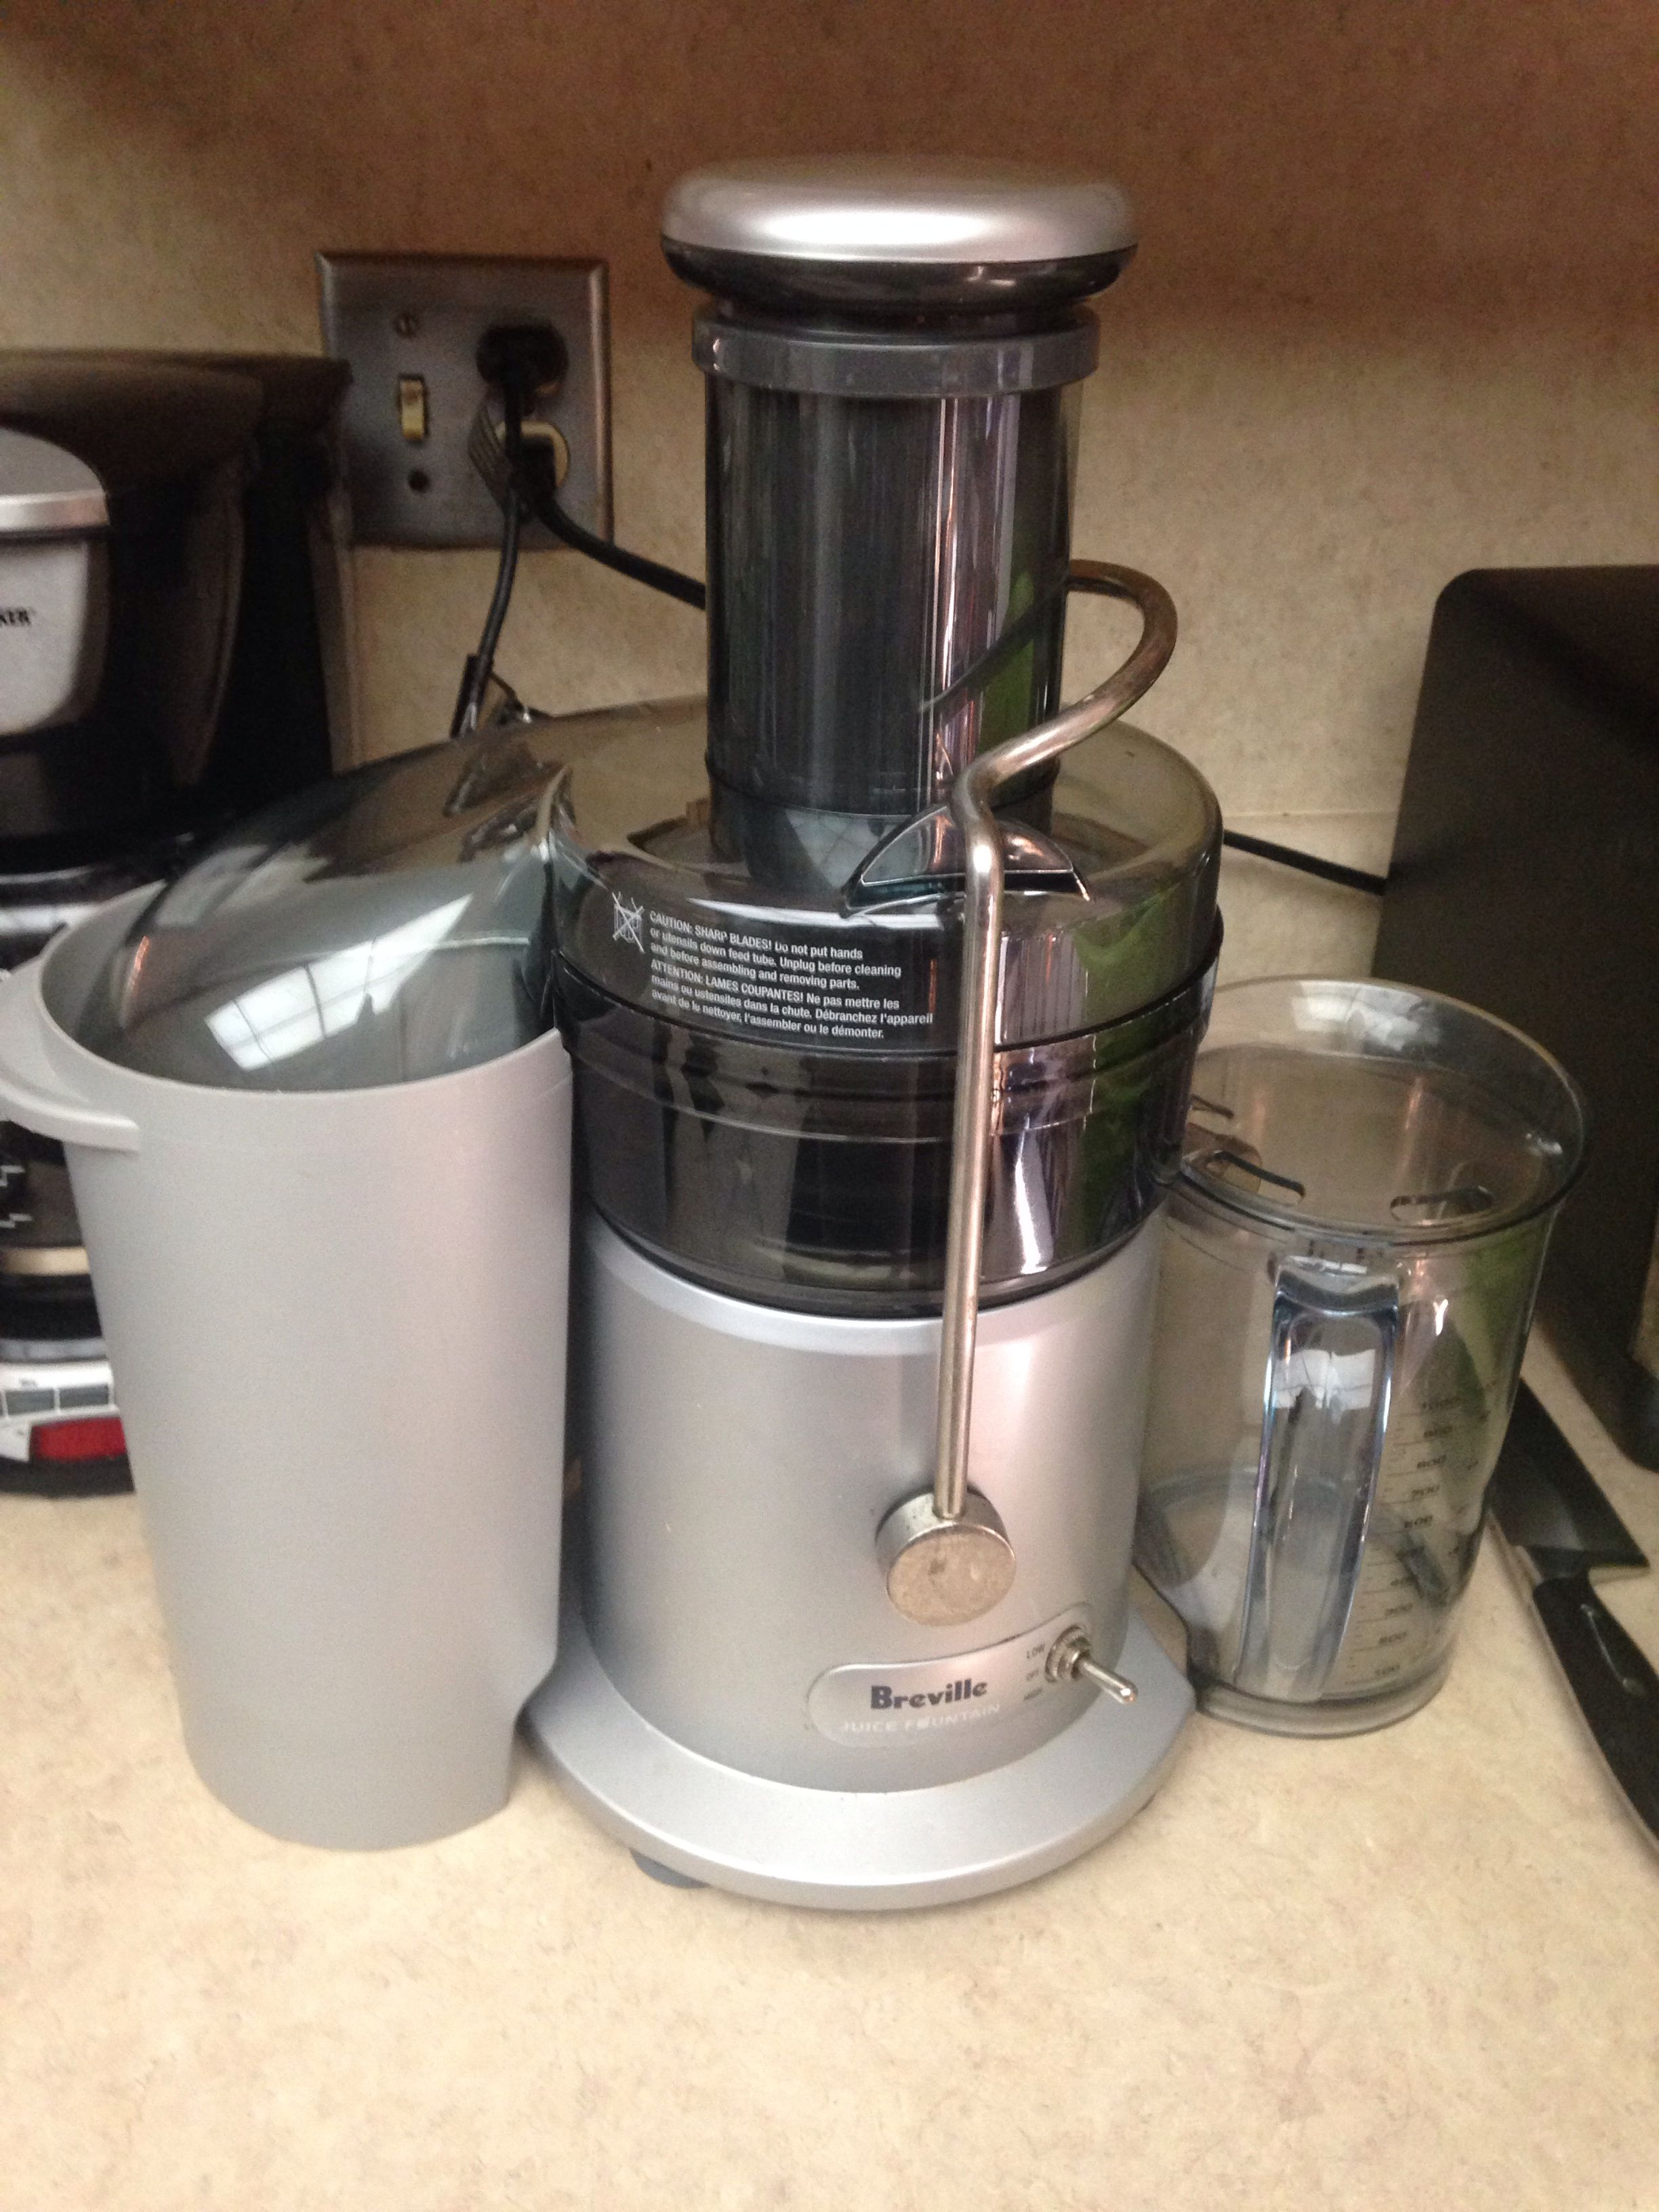 All made possible by one of our favorite appliances that's been going strong for four years!!! And still going!